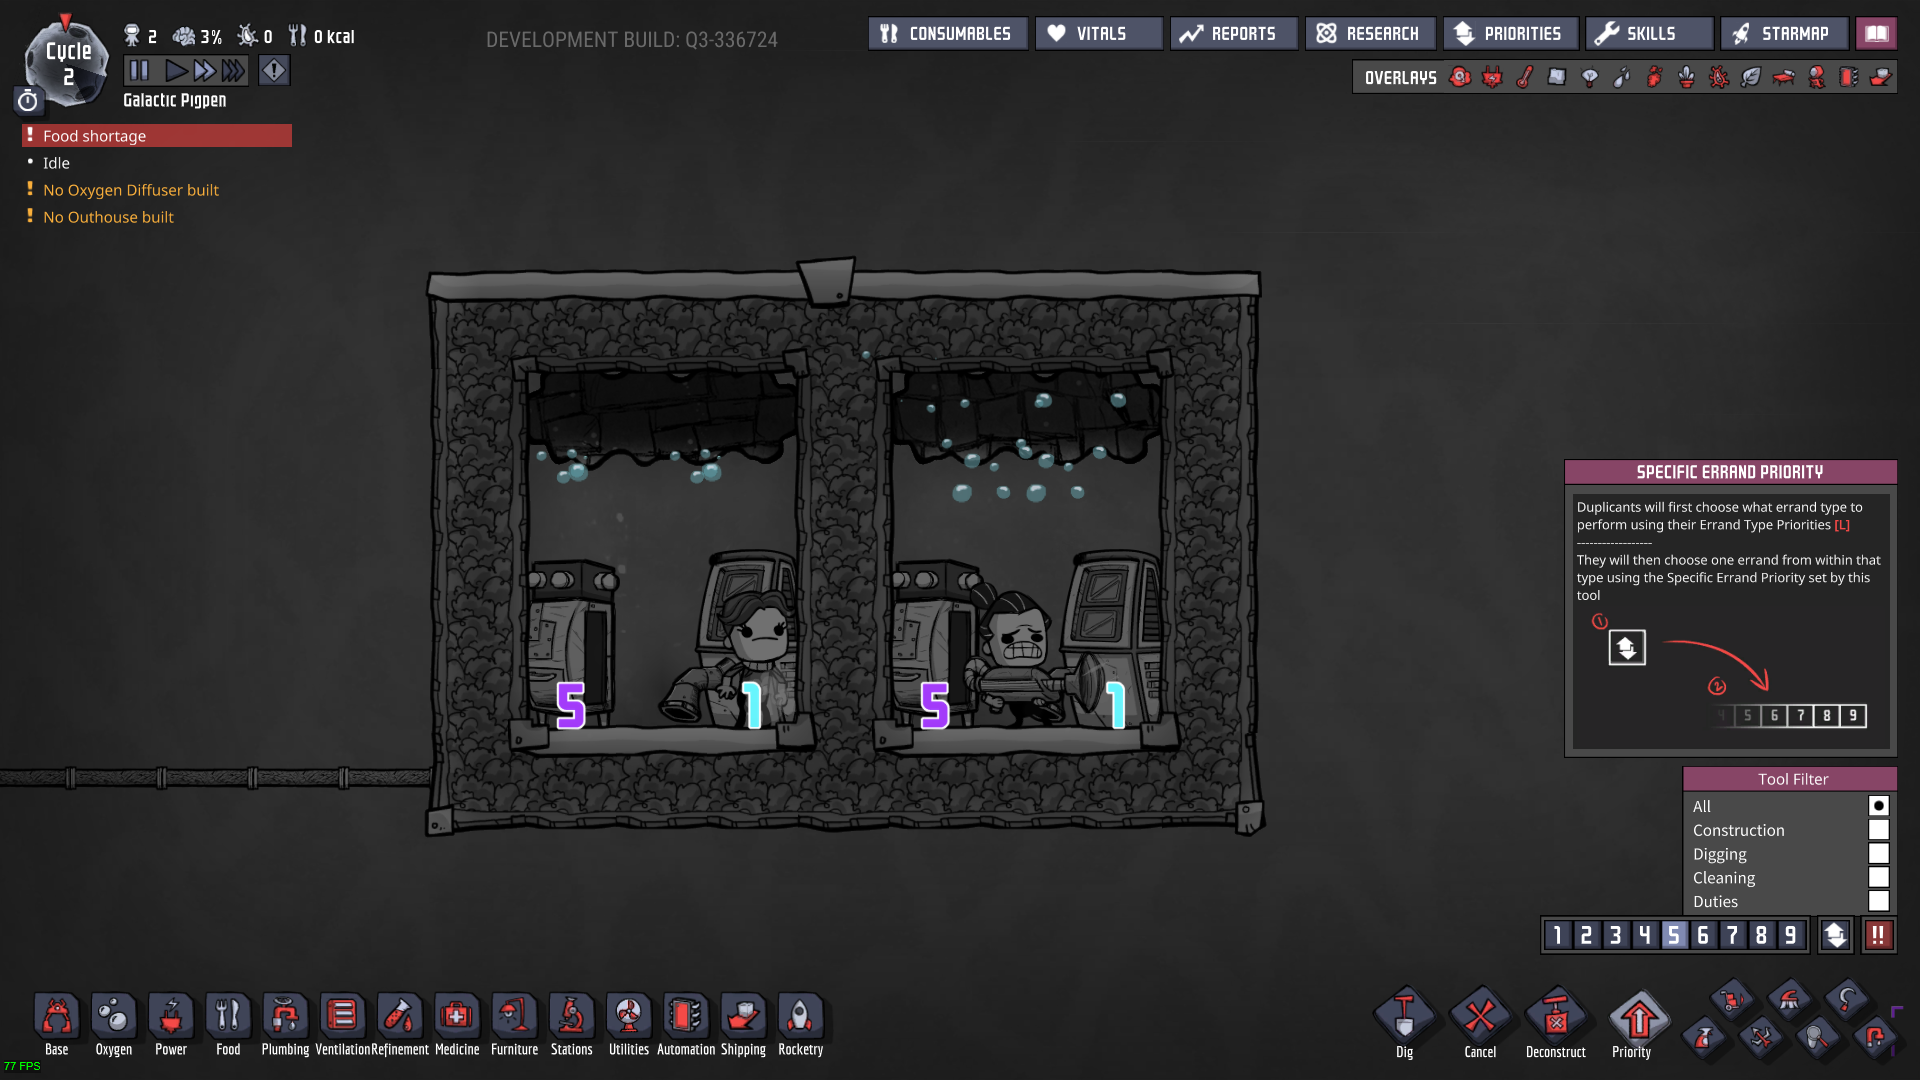 Automatic Dispenser storage priority is bugged - Oxygen Not